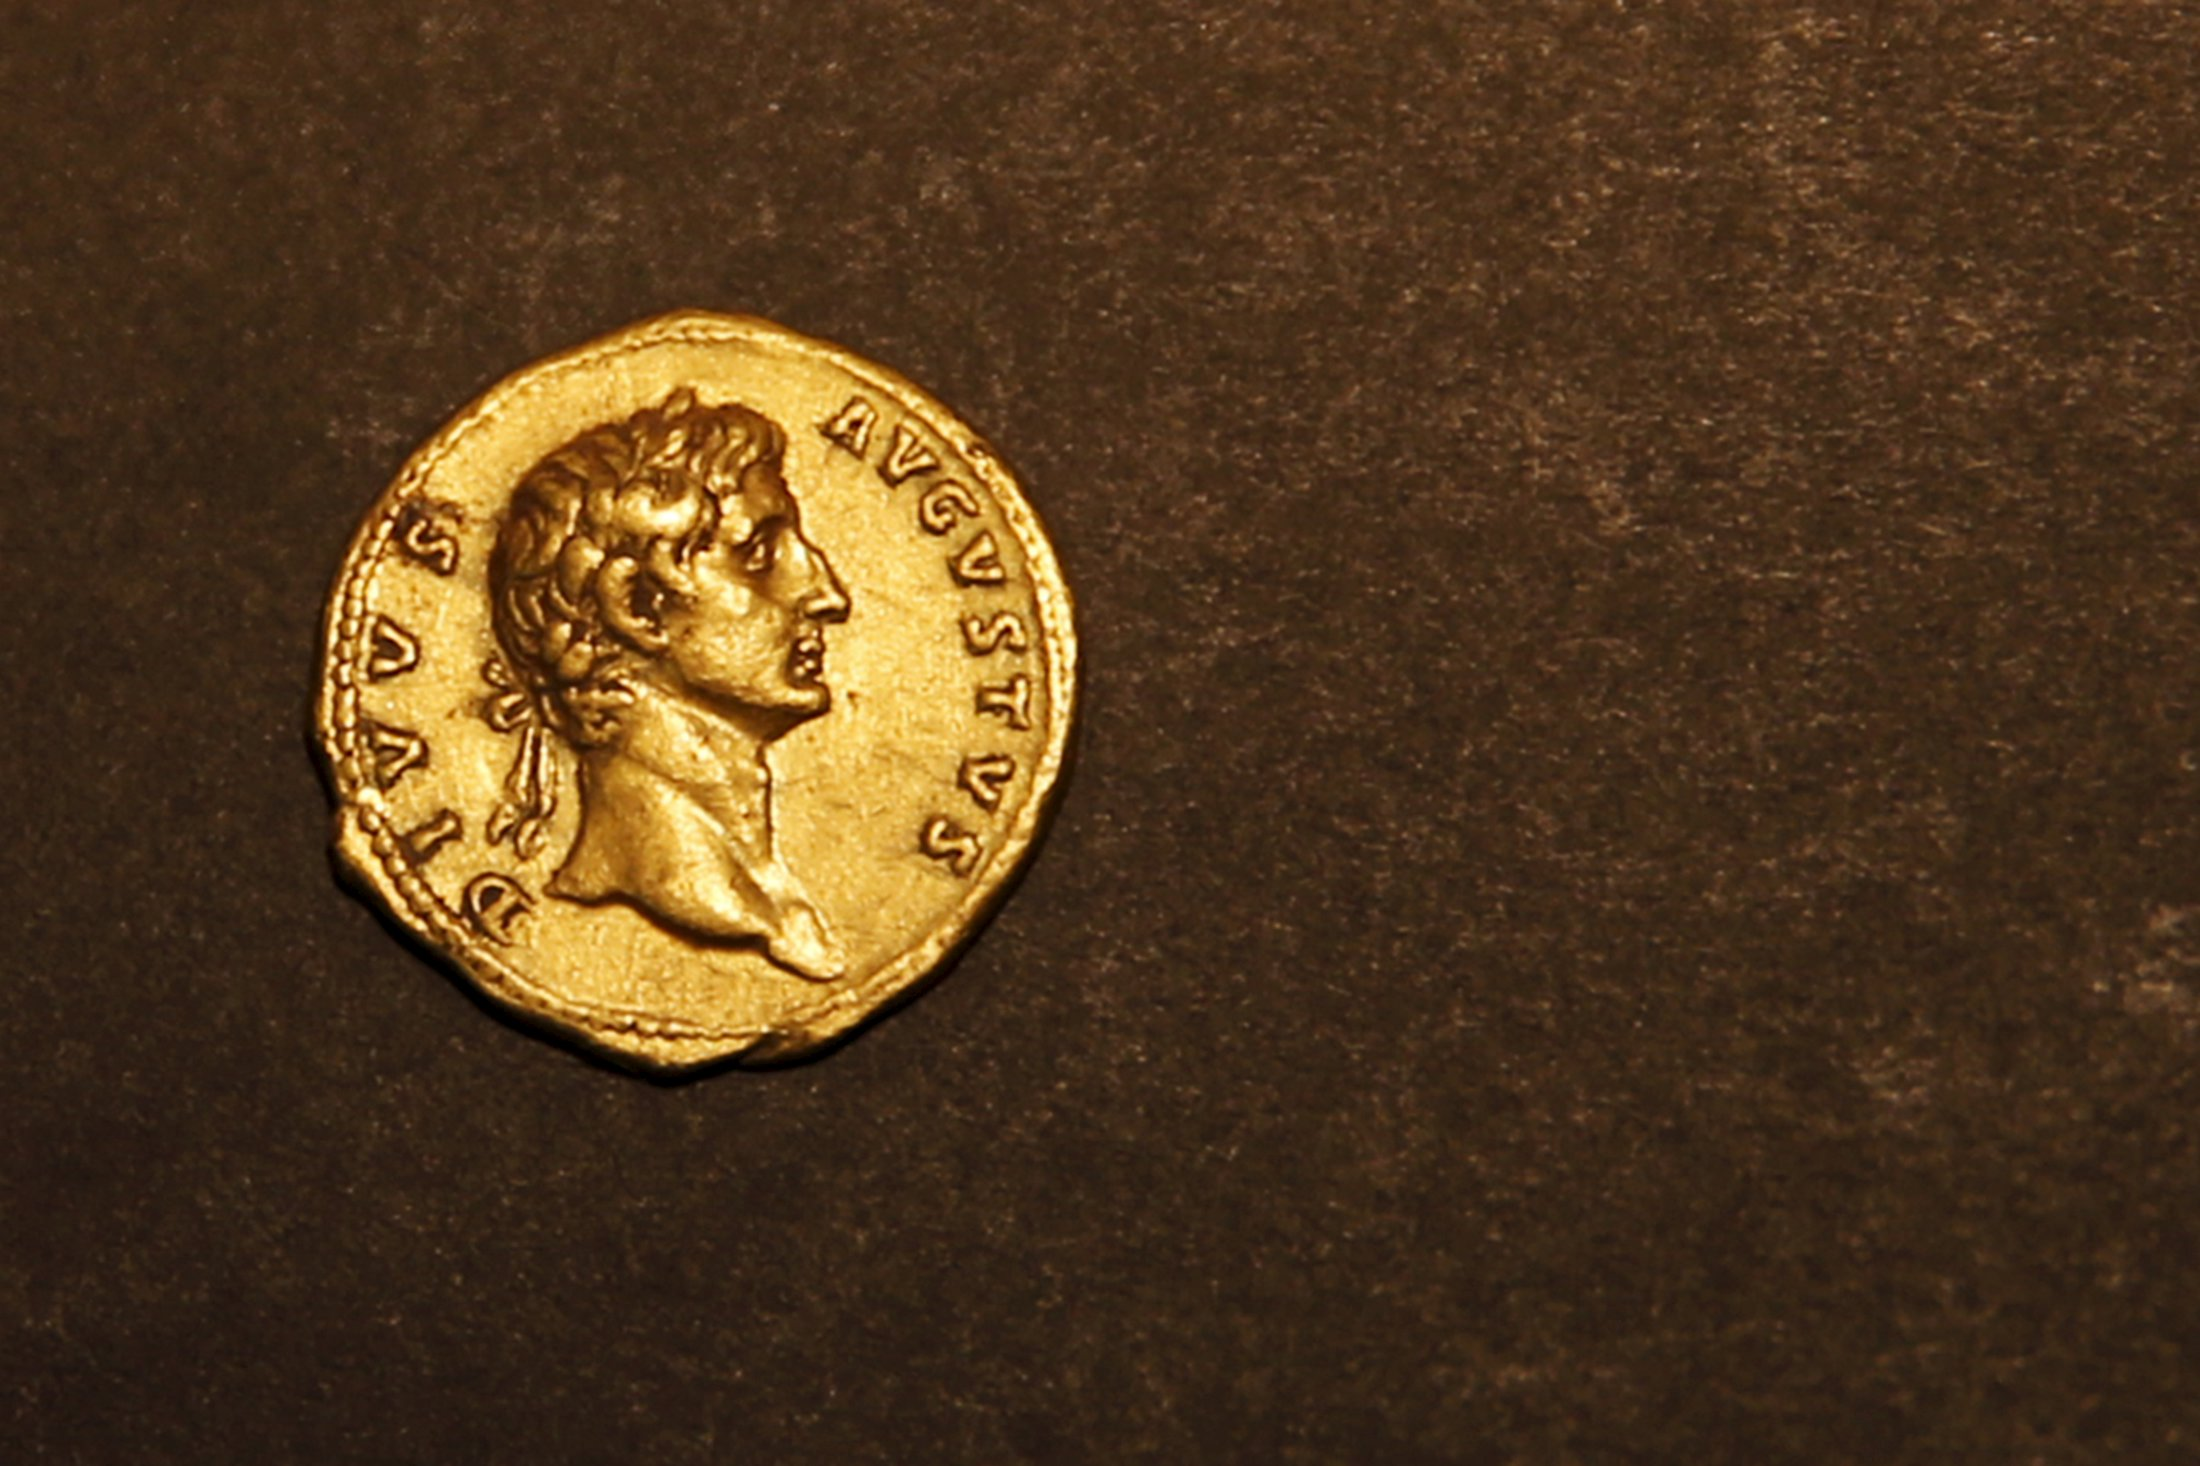 israeli hiker finds rare coin dating from 107 a d cbs news